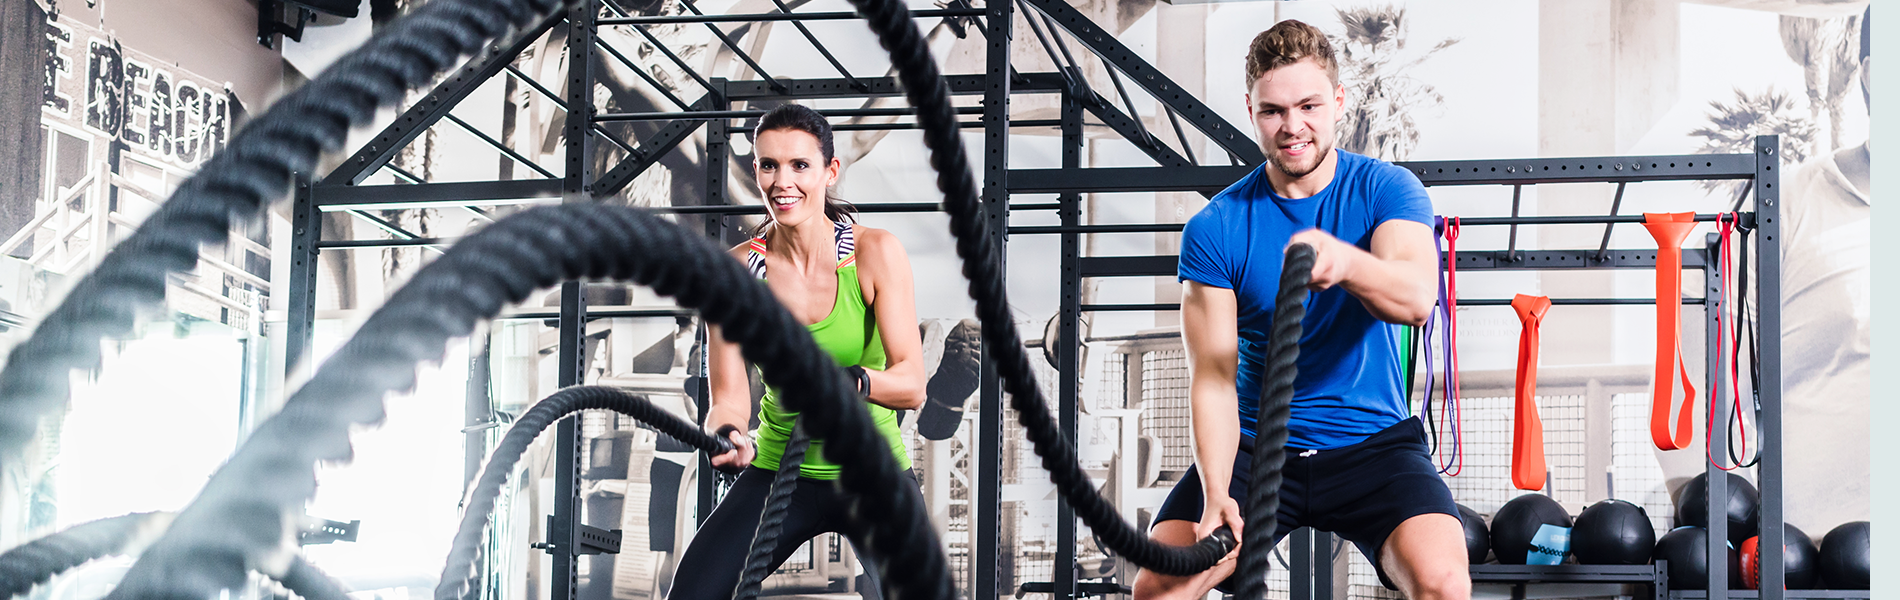 Membership pricing strategy for fitness clubs